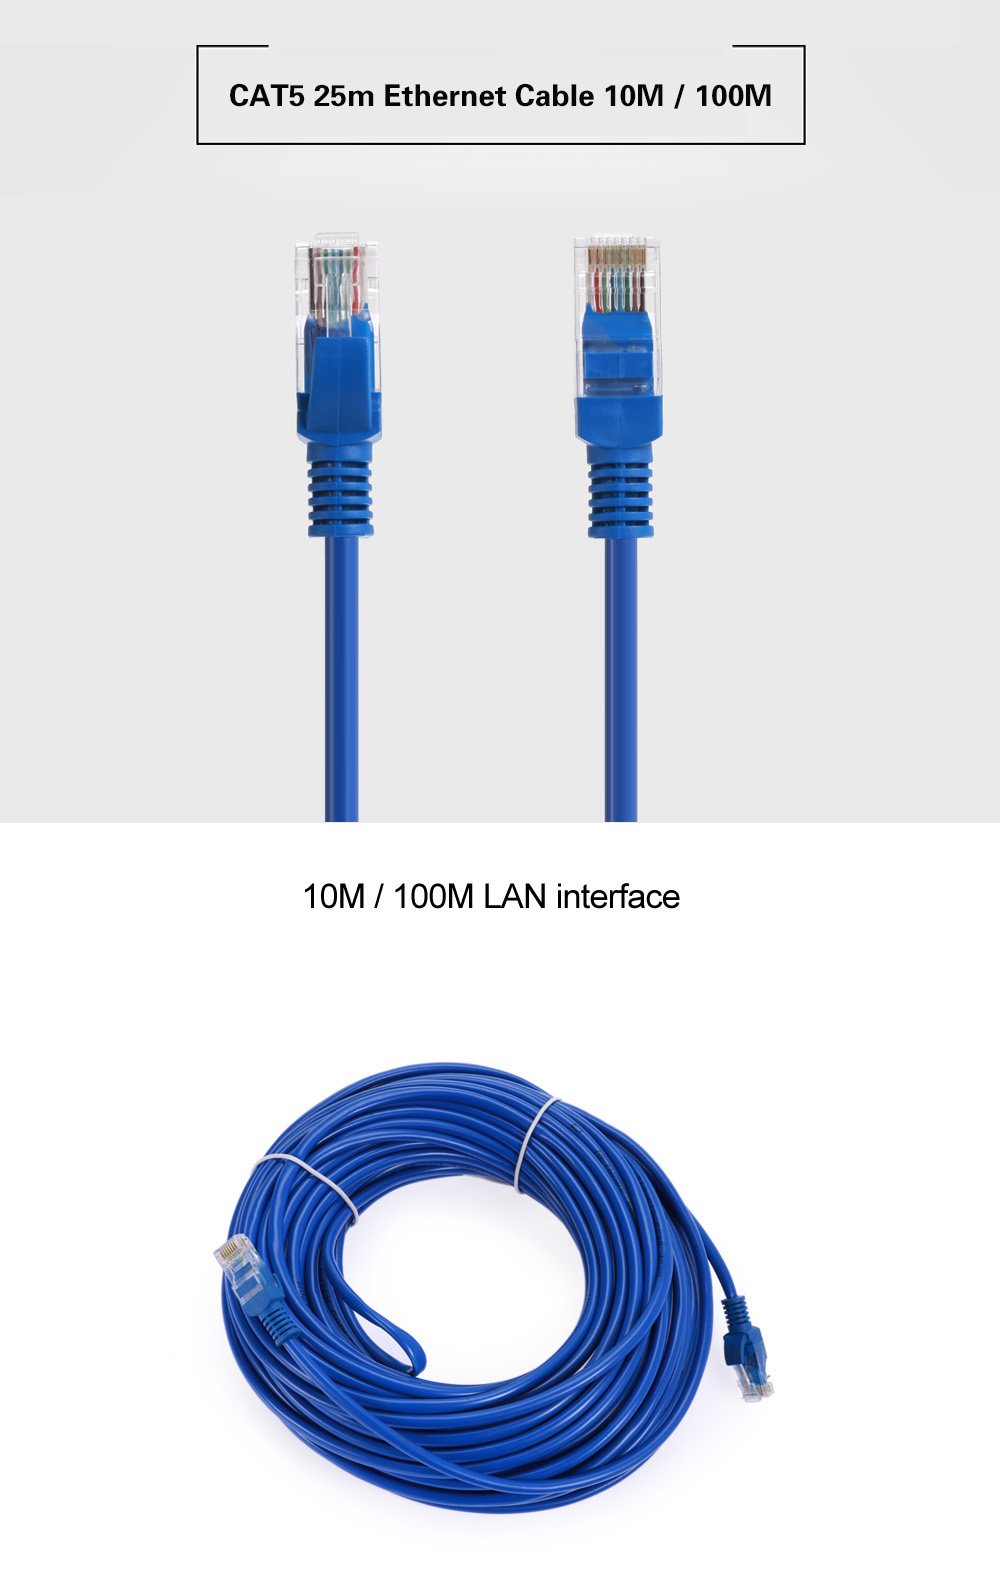 cat5 25m ethernet cable 10m 100m networking accessory online shopping. Black Bedroom Furniture Sets. Home Design Ideas